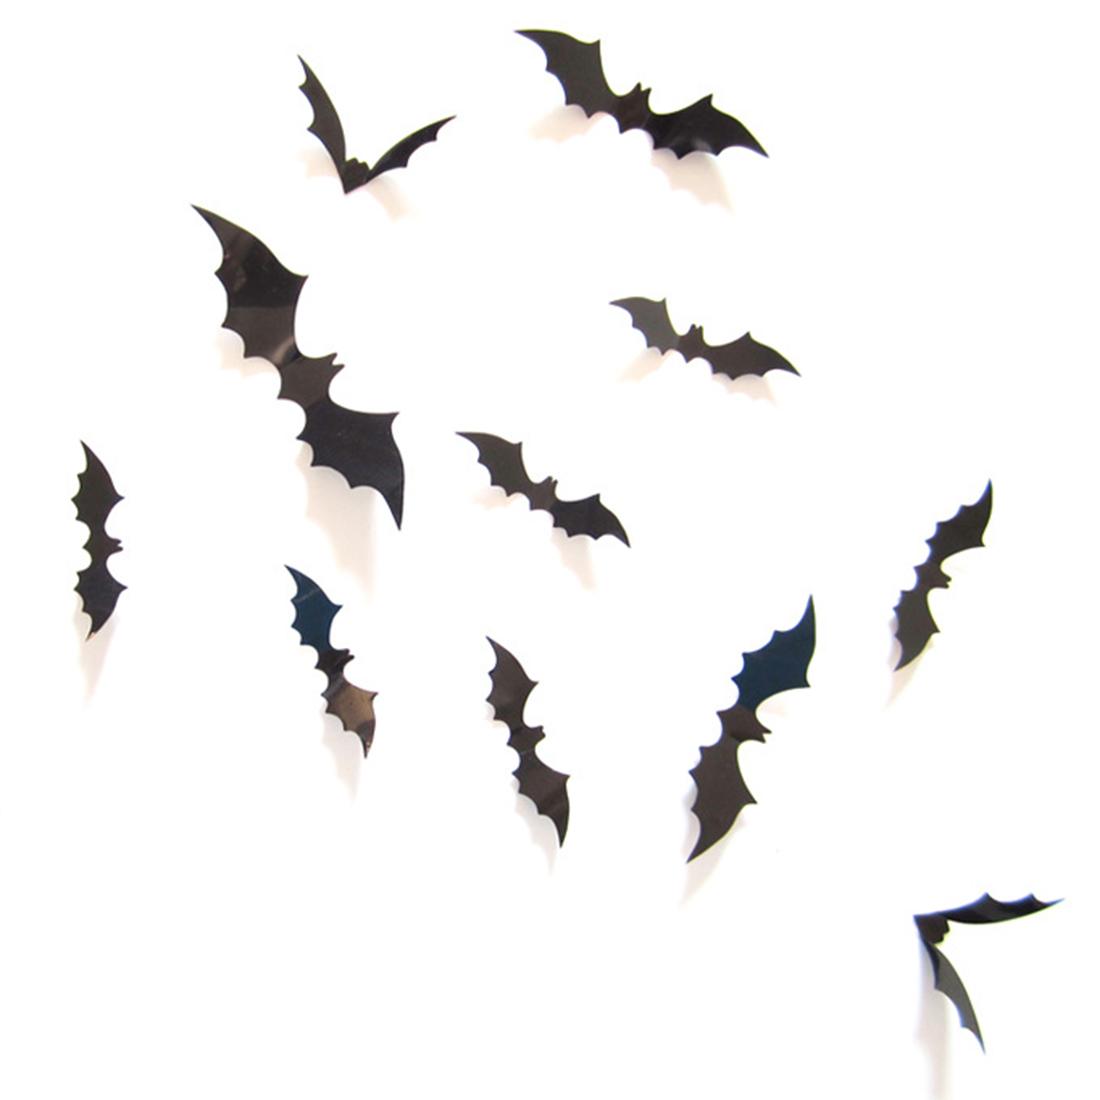 12pcsset 2016 attractive 3d diy pvc red black bat wall sticker decal home halloween decoration bats sticker supply - Bat Halloween Decorations